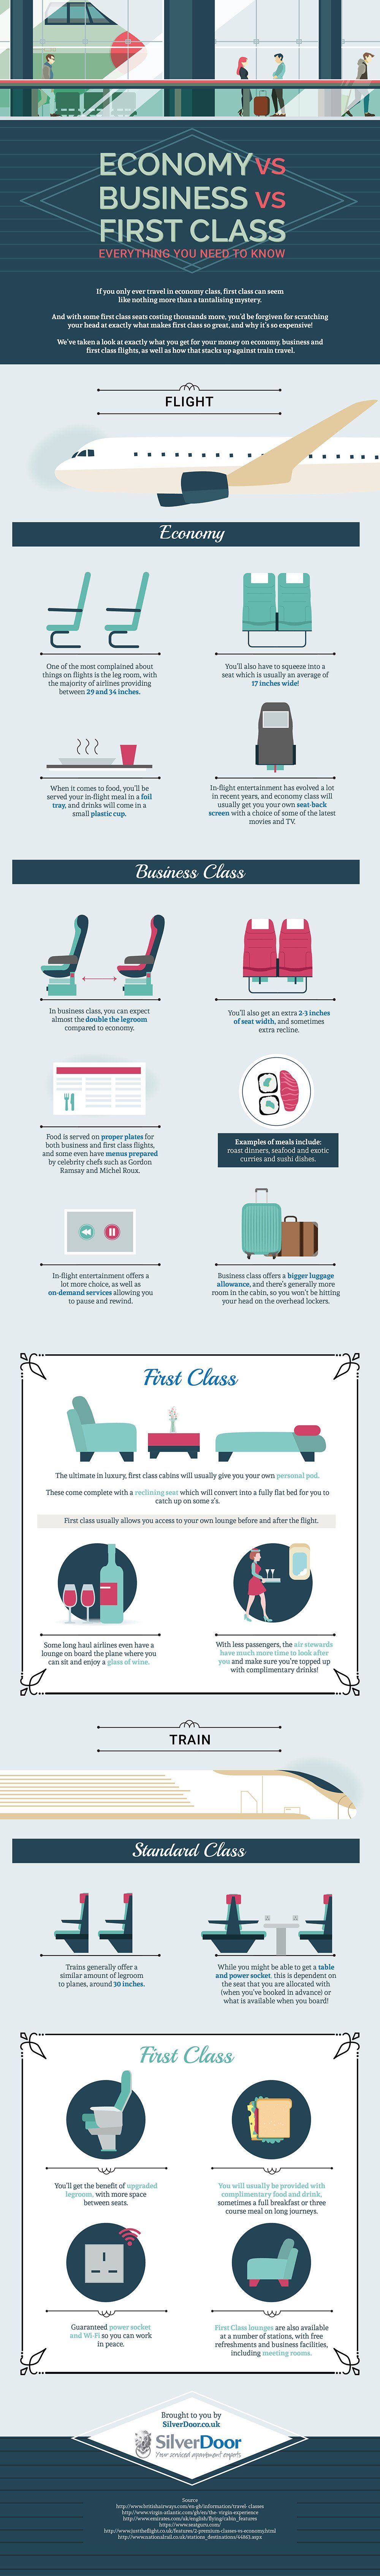 Economy vs Business vs First Class - Everything You Need To Know